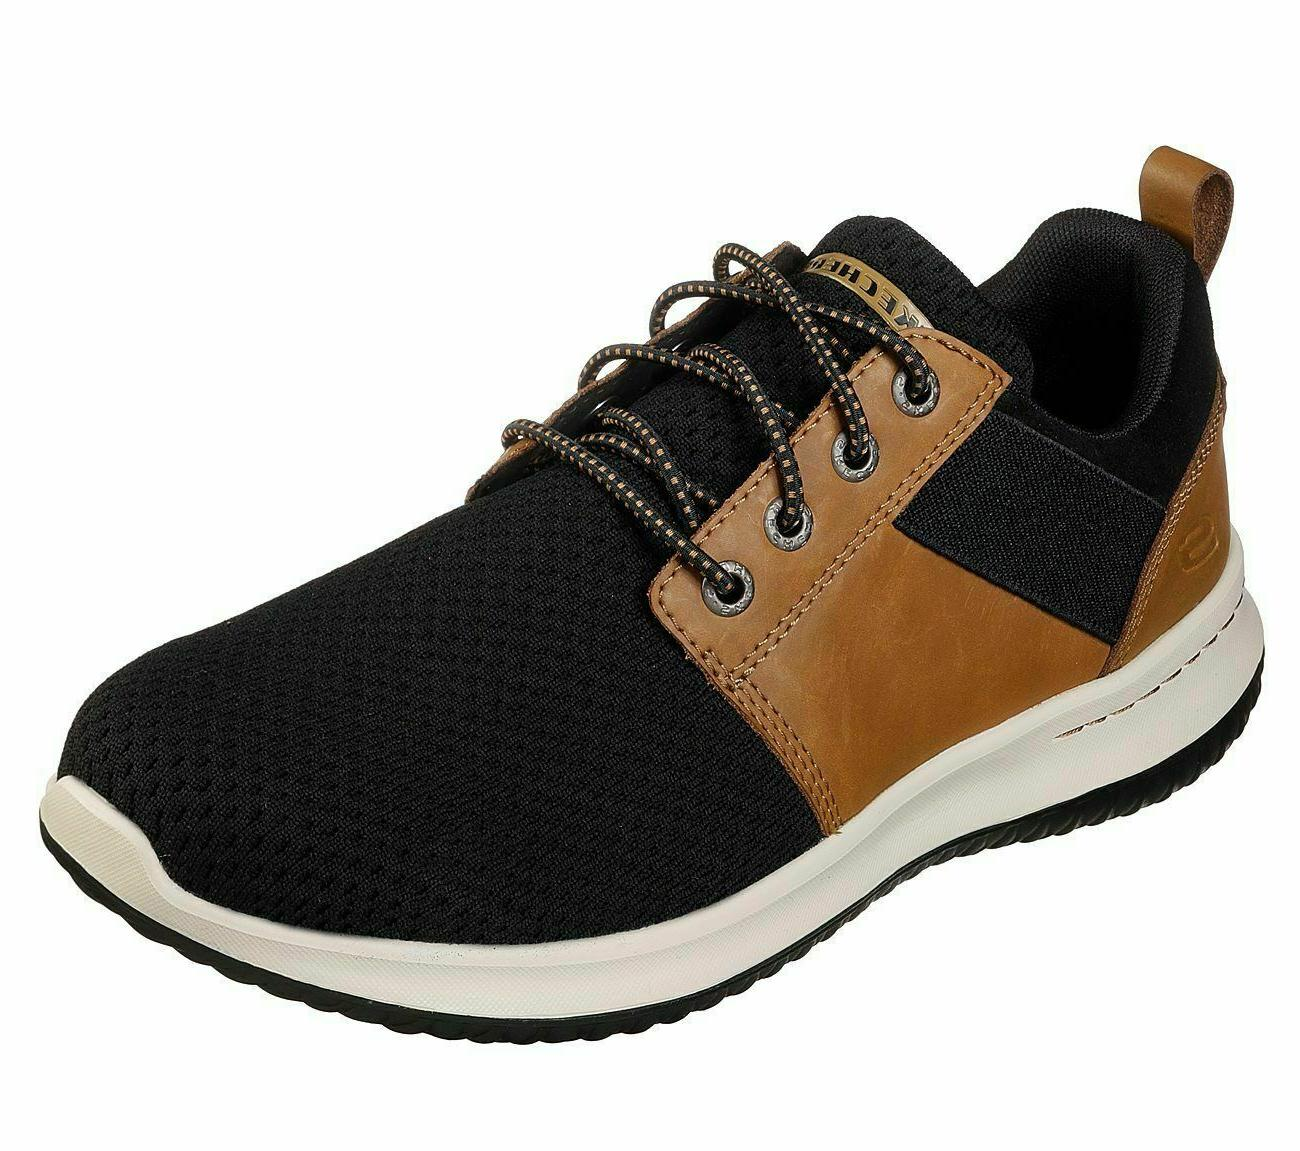 Brown Black Skechers Shoes Wide Fit Men Memory Foam Comfort